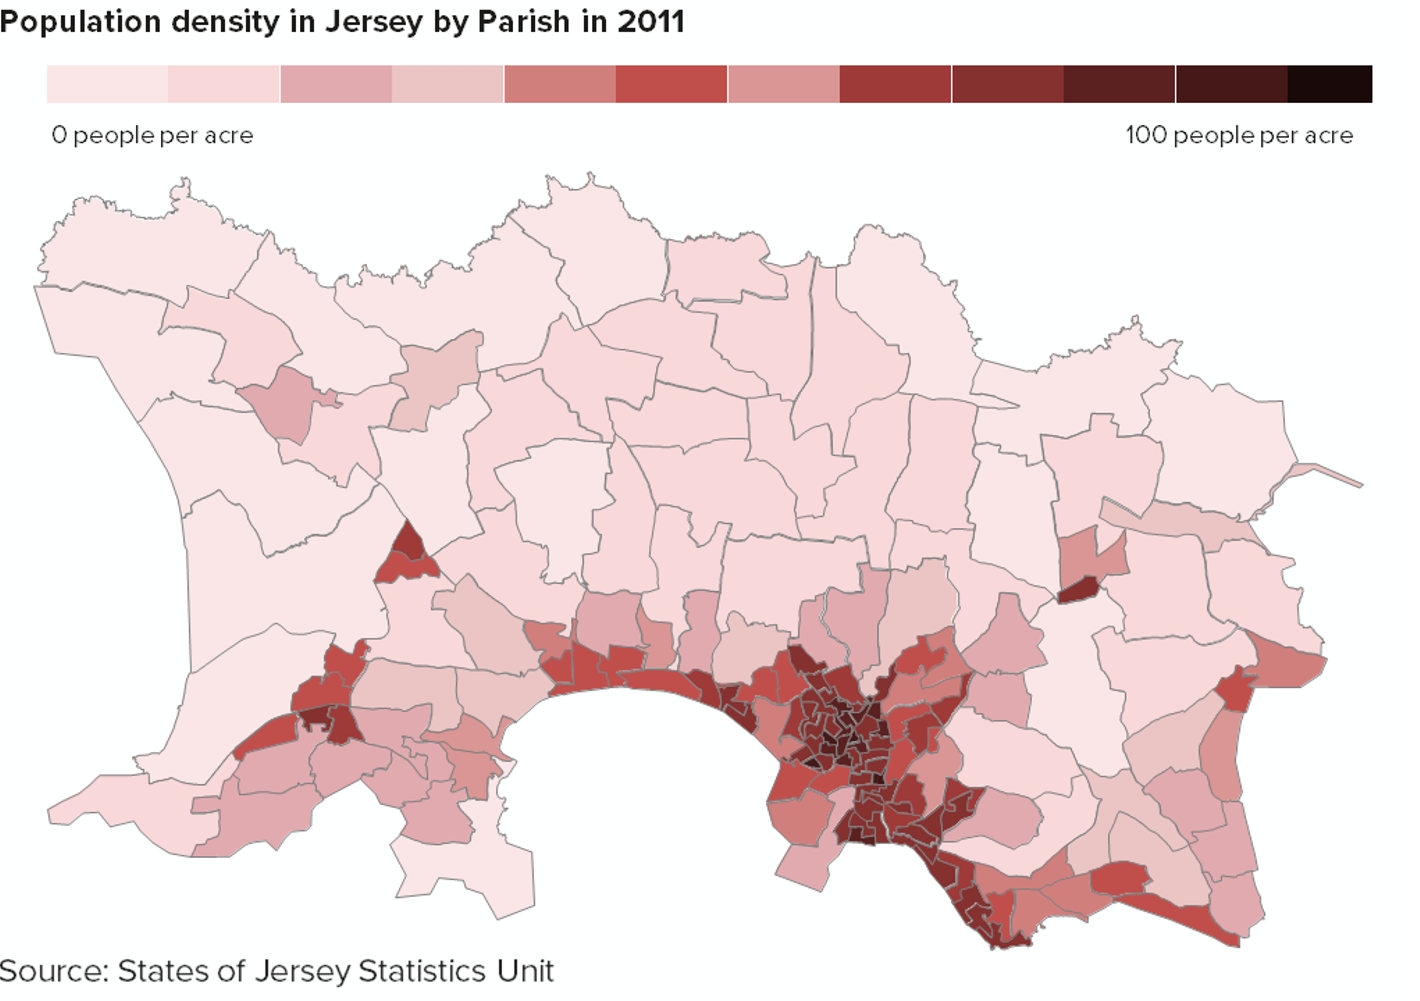 Chart showing population density in Jersey by Parish in 2011